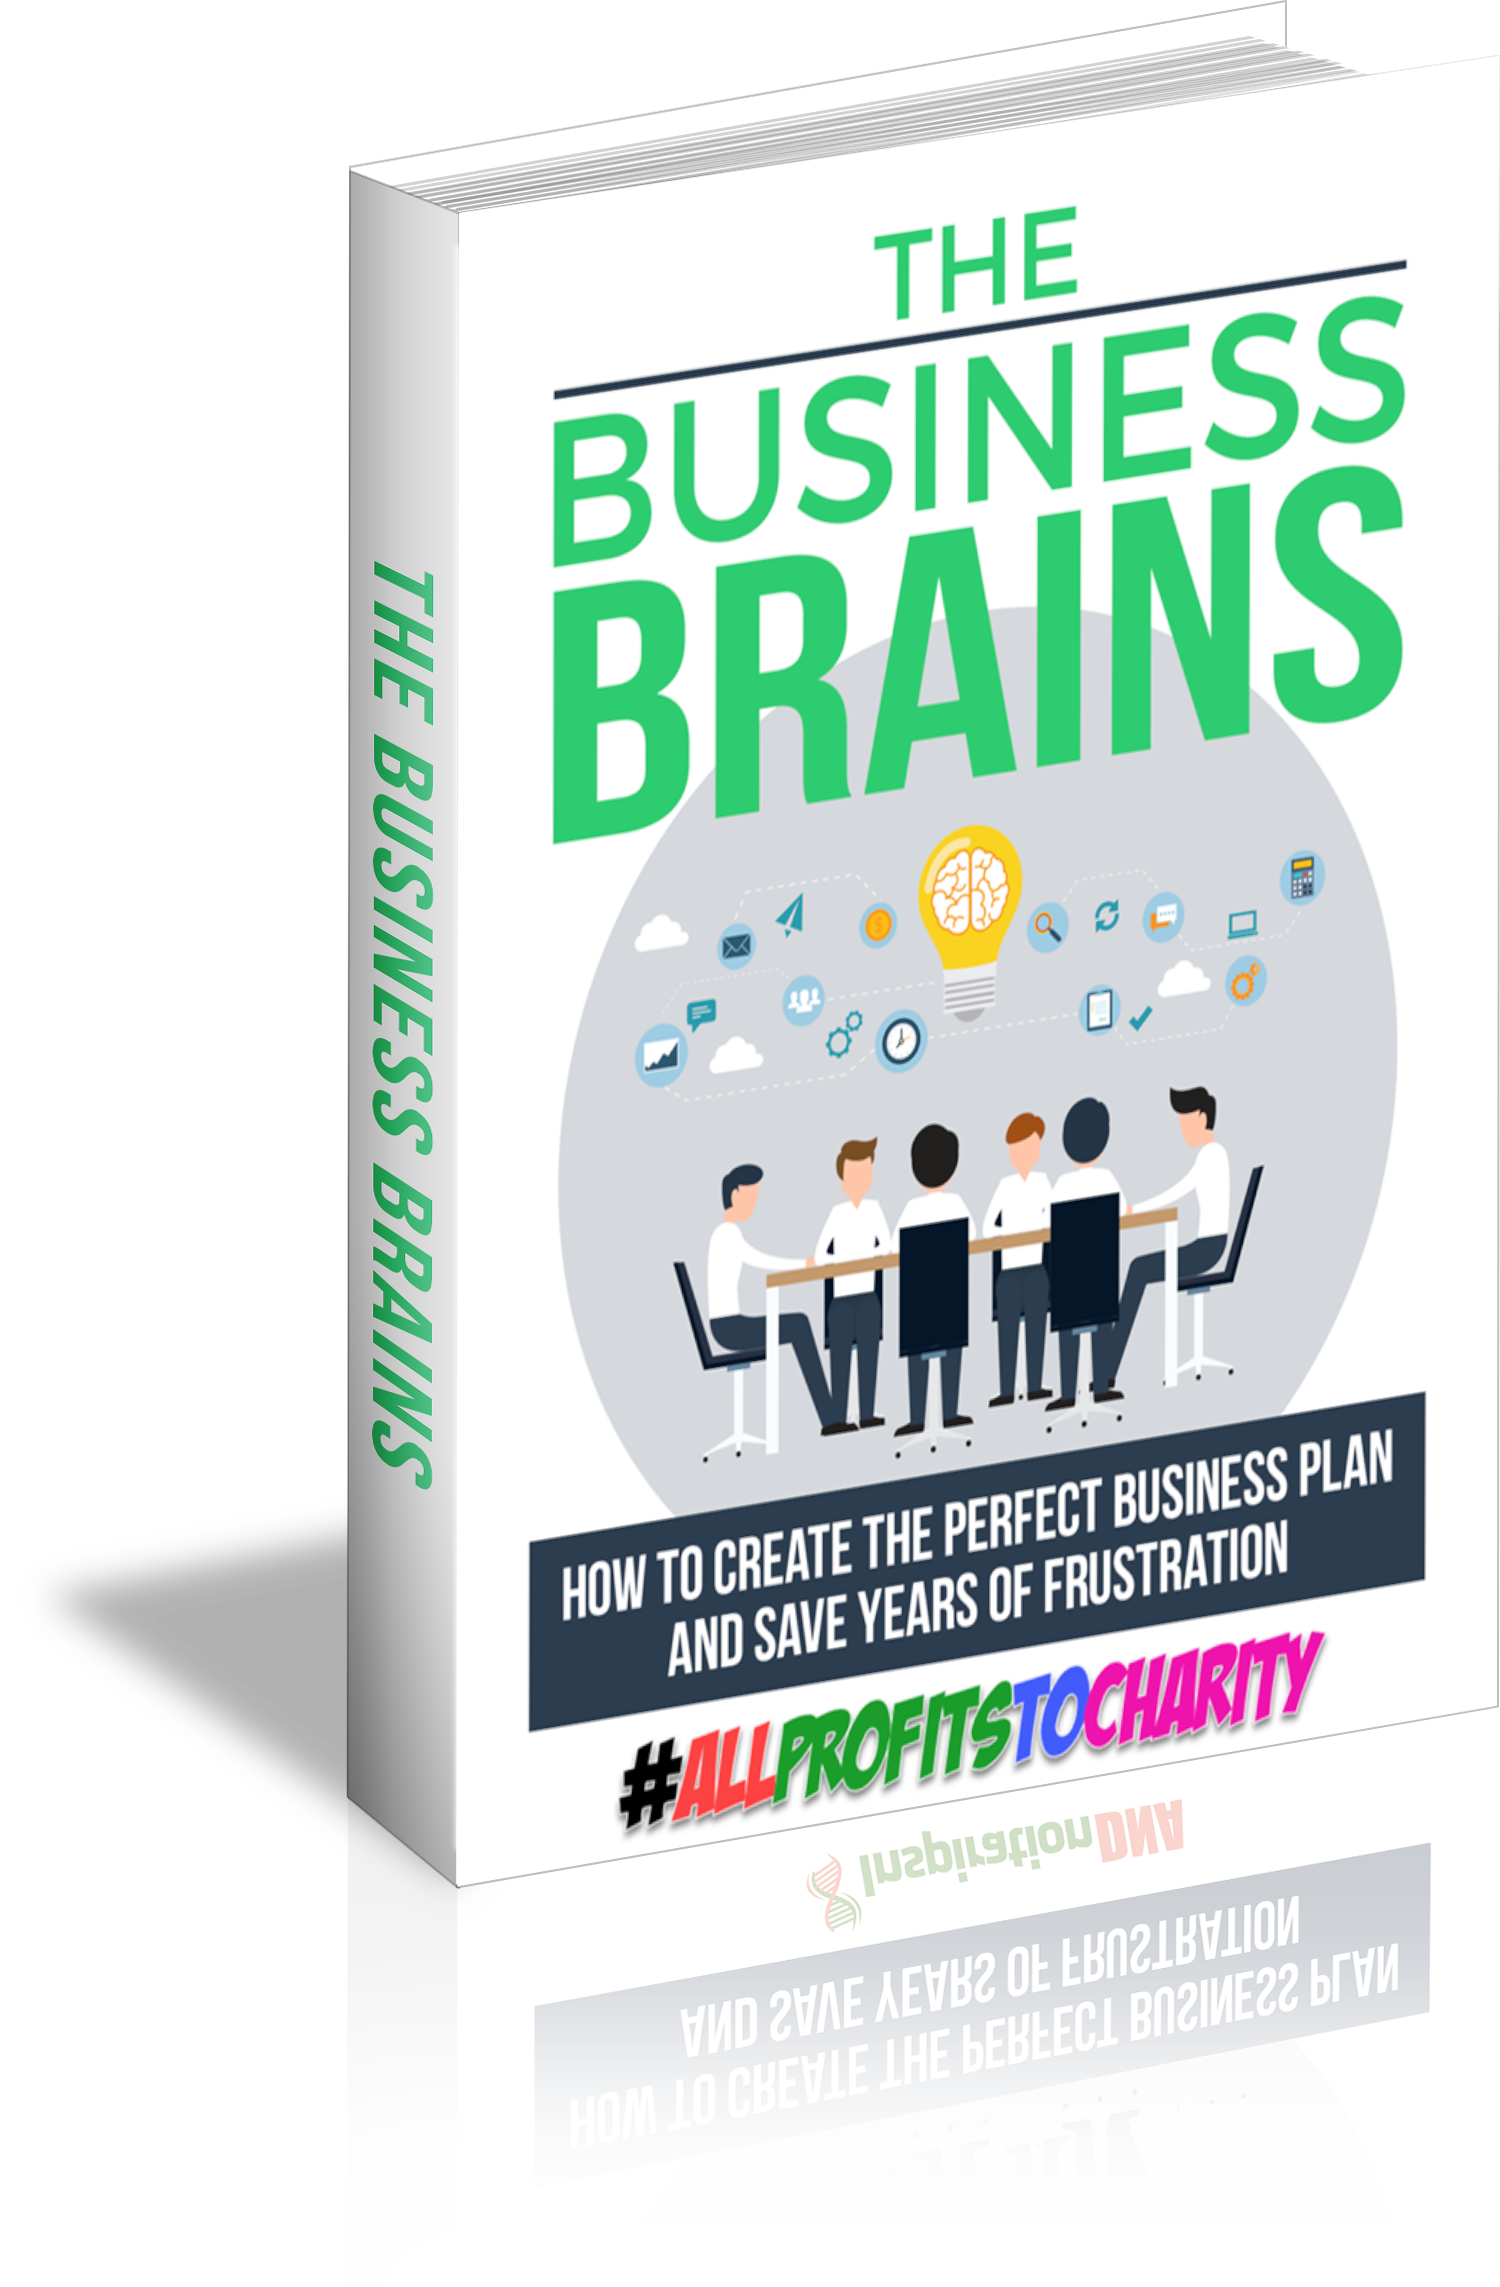 The Business Brains cover